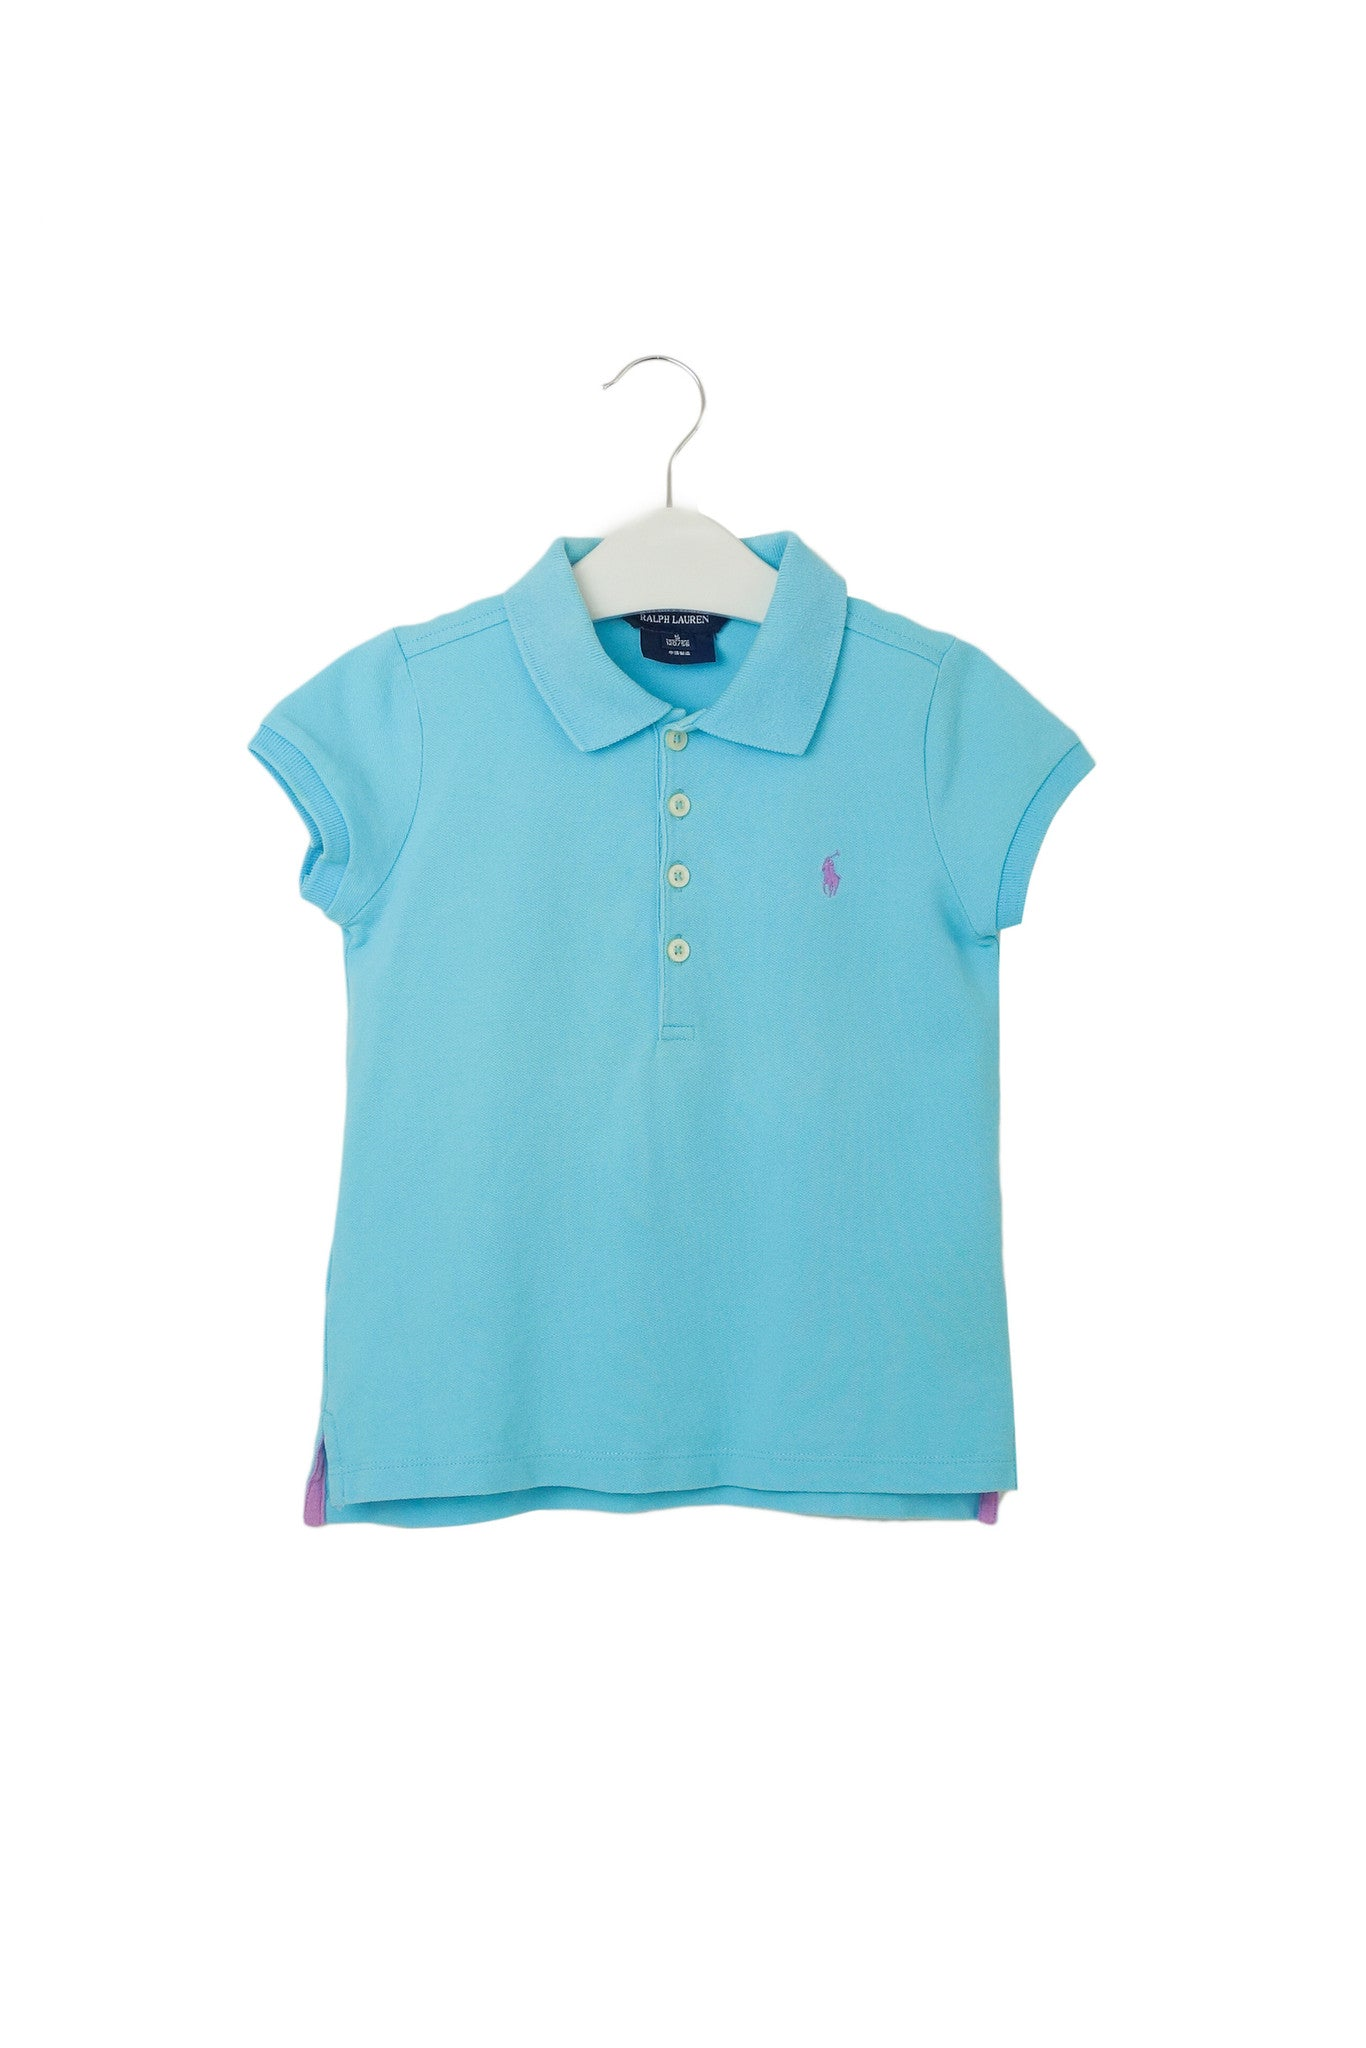 10003141 Ralph Lauren Kids~Polo 5T at Retykle